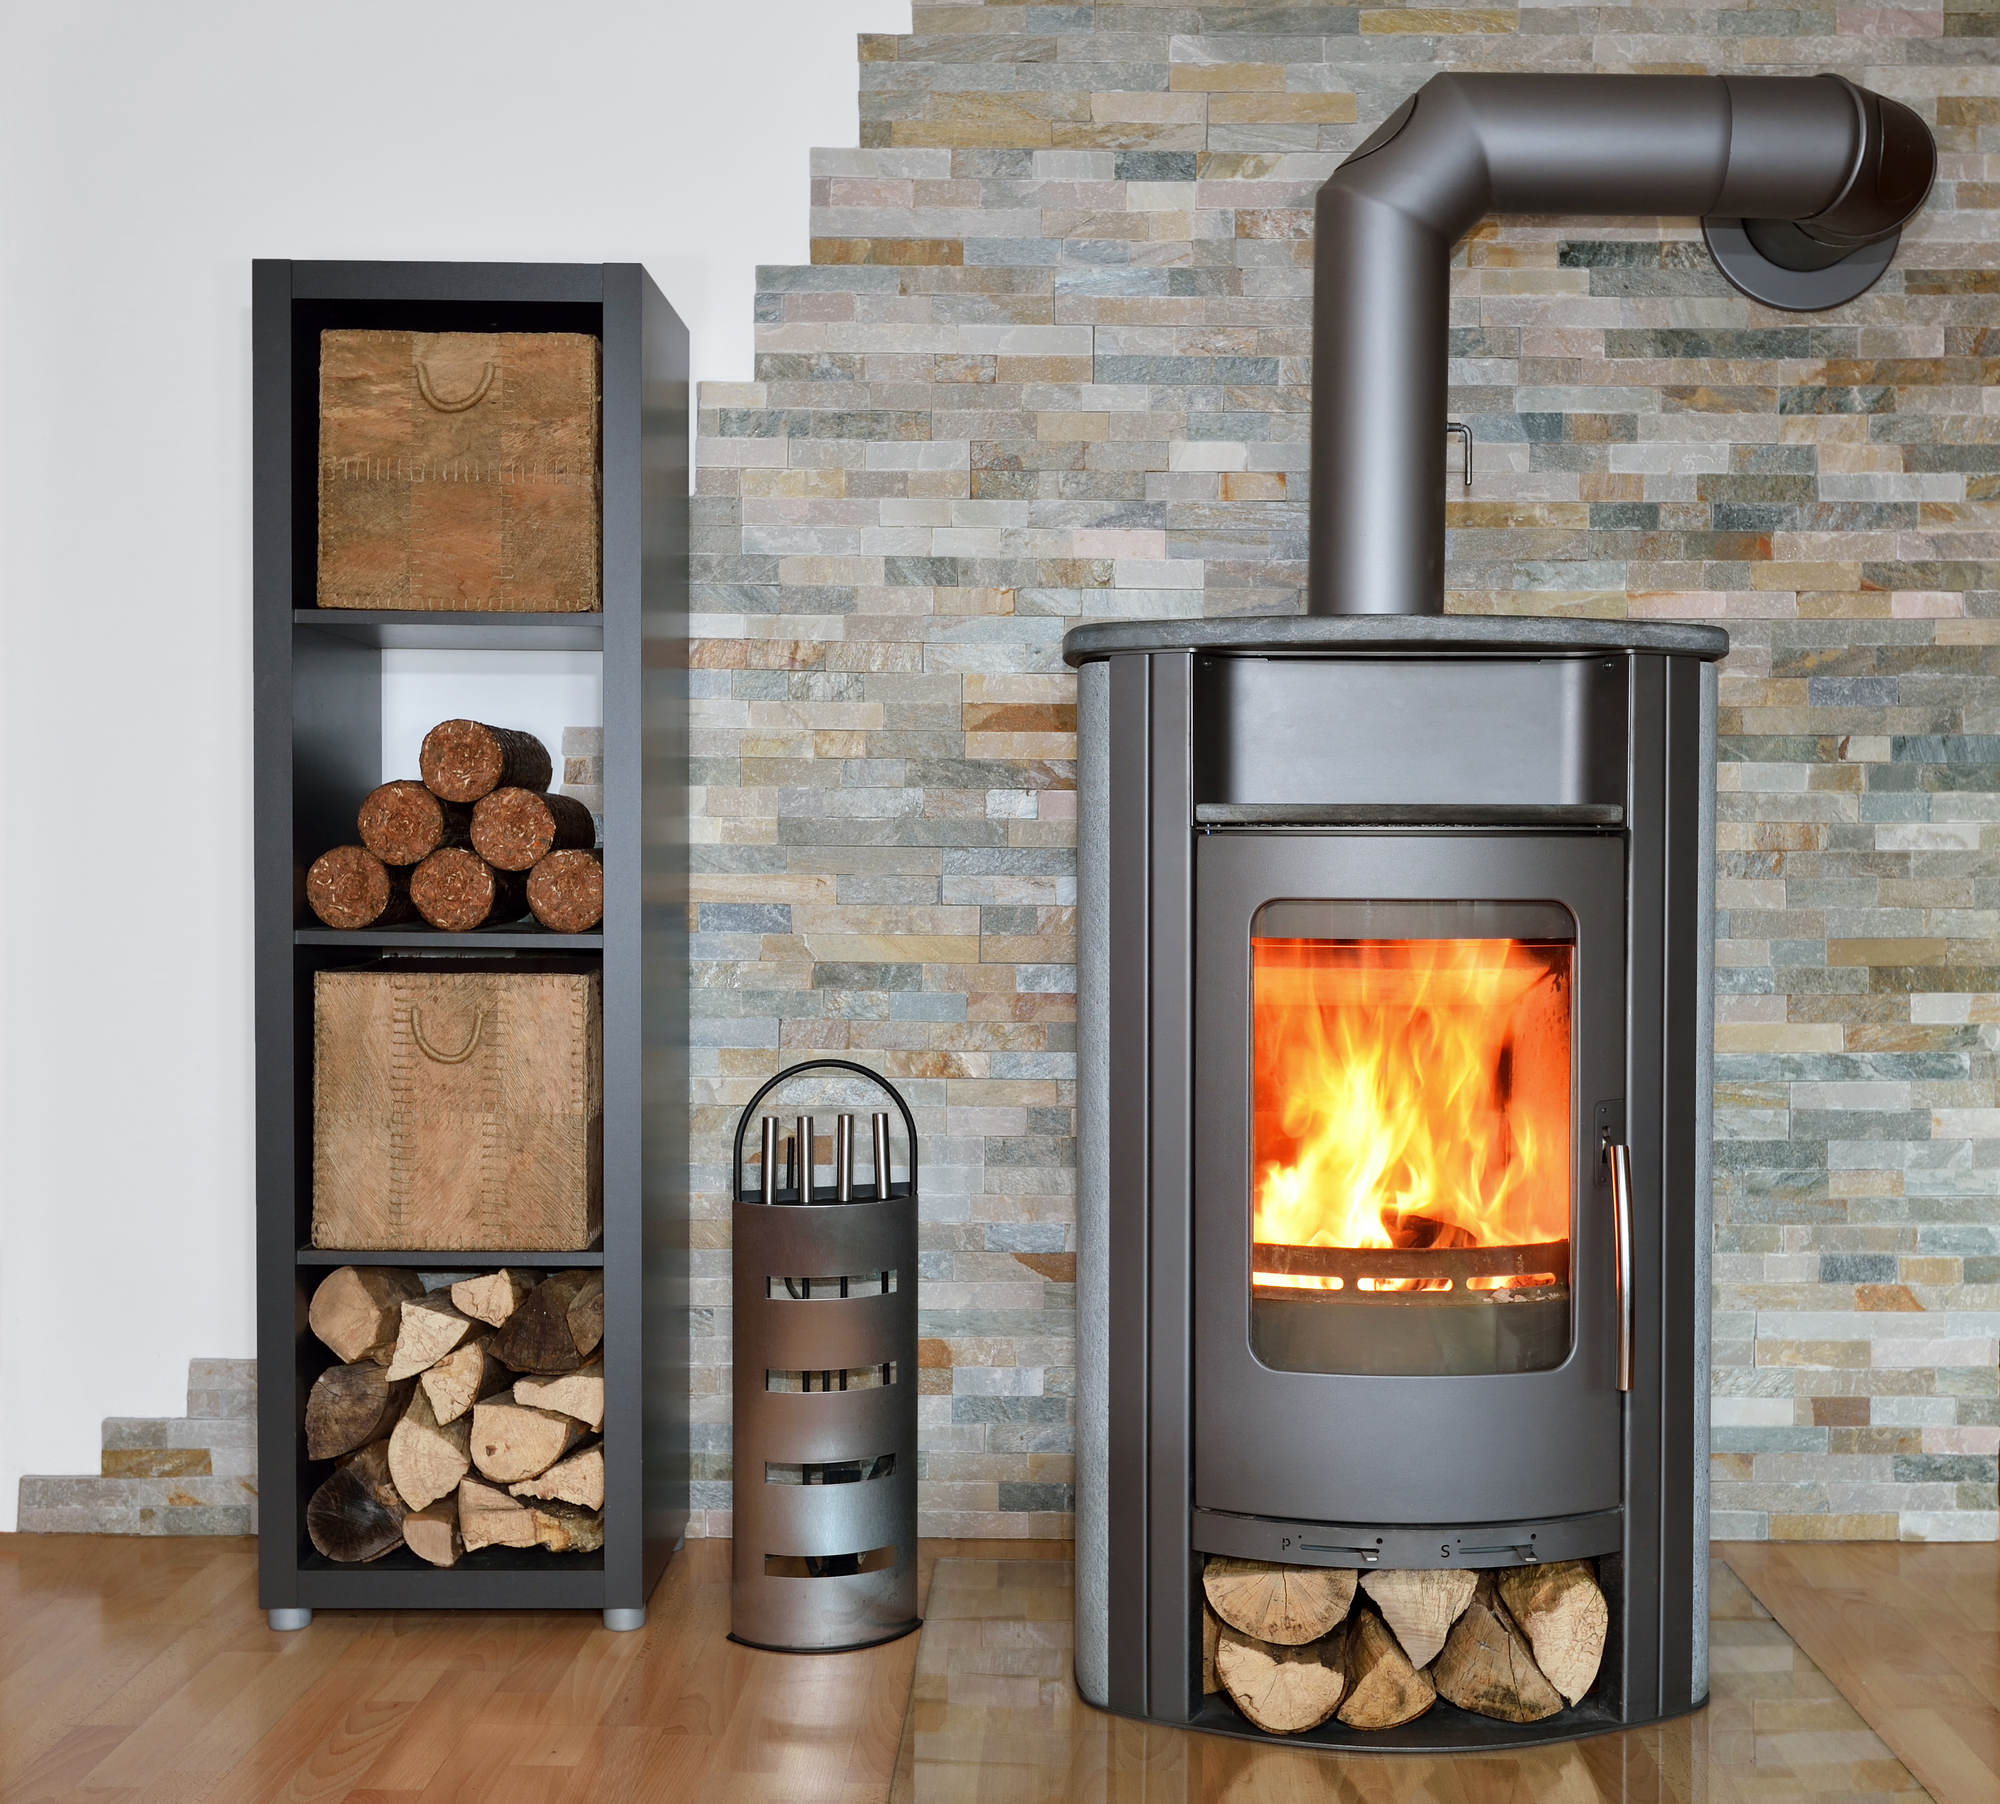 7 Reasons to Use a Wood Stove to Heat Your Home This Winter ...